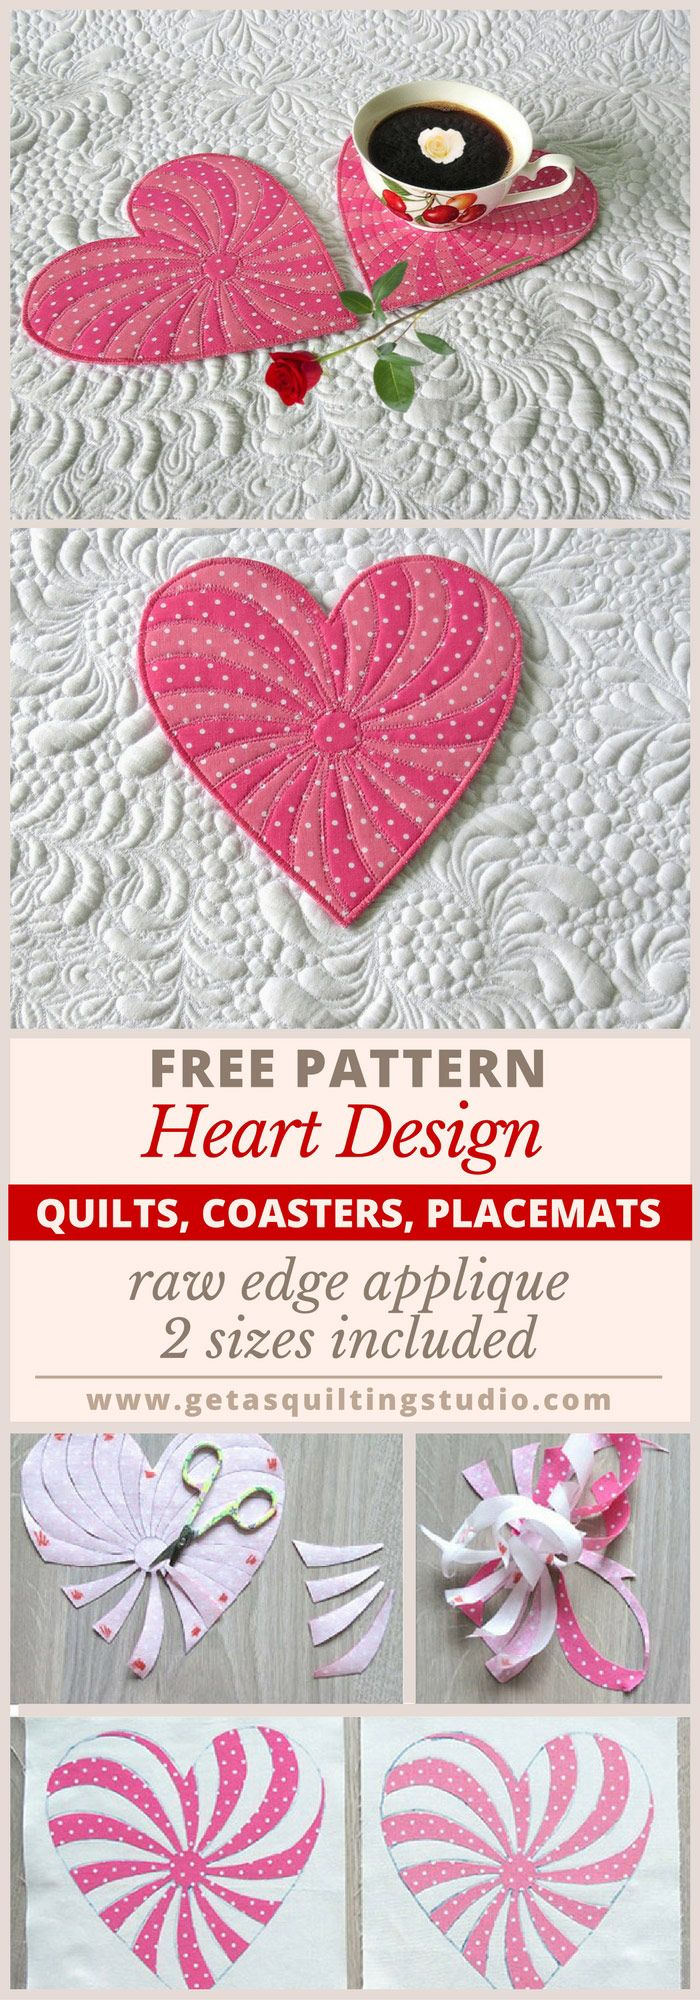 805 best Needle and Thread images on Pinterest : heart applique quilt patterns - Adamdwight.com